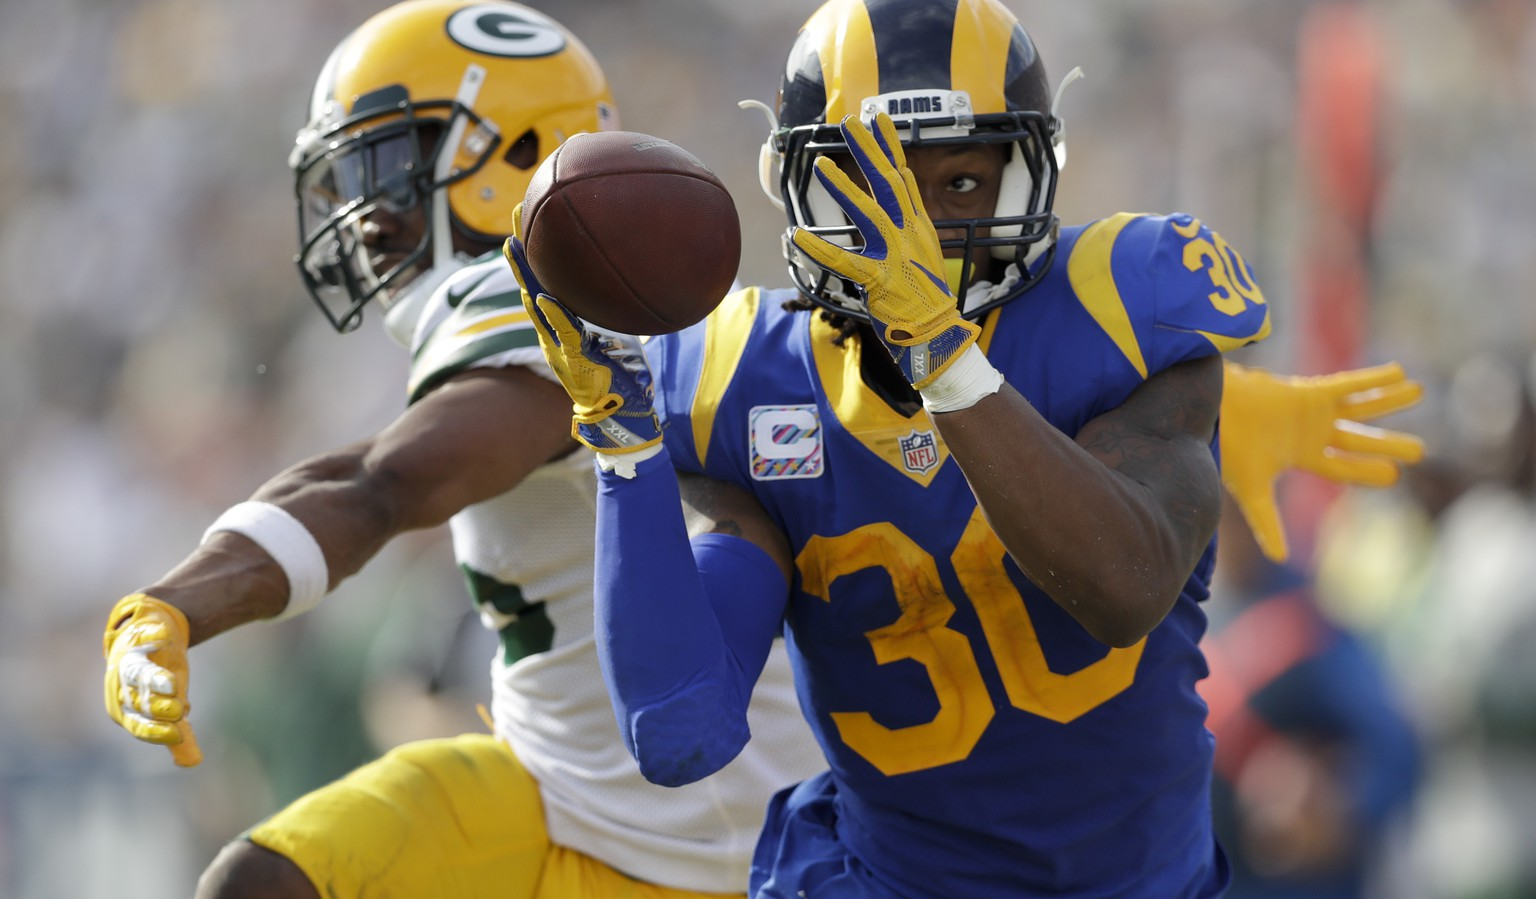 Los Angeles Rams running back Todd Gurley makes a catch as Green Bay Packers defensive back Jermaine Whitehead defends during the first half of an NFL football game, Sunday, Oct. 28, 2018, in Los Angeles. (AP Photo/Marcio Jose Sanchez)